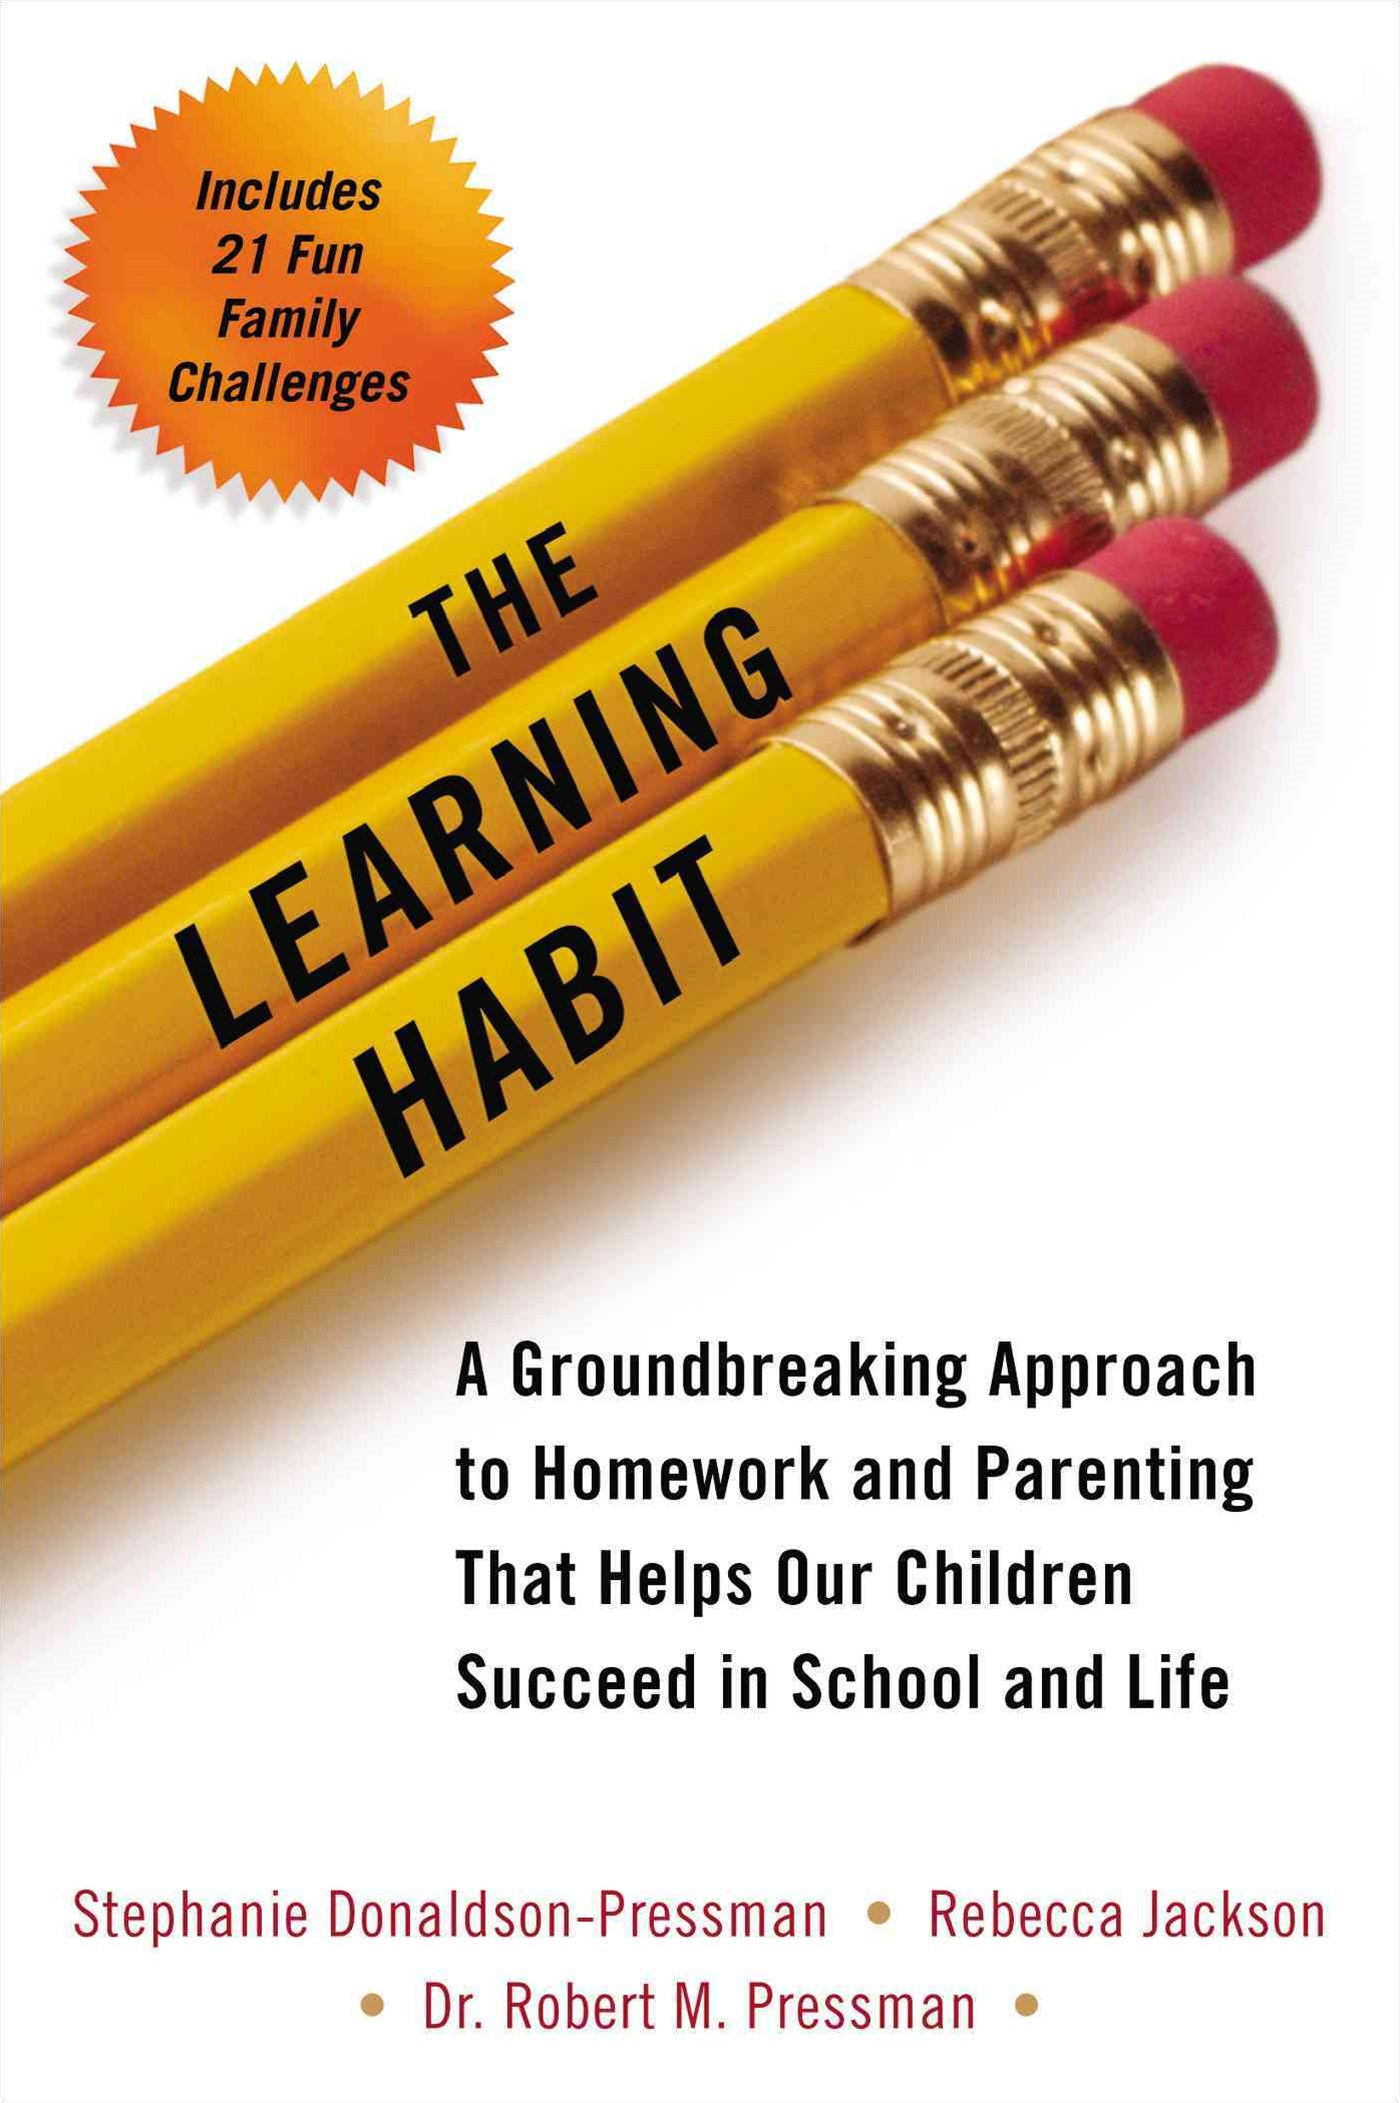 Learning Habit: A Groundbreaking Approach To Homework And Parenting That Helps Our Children Succeed